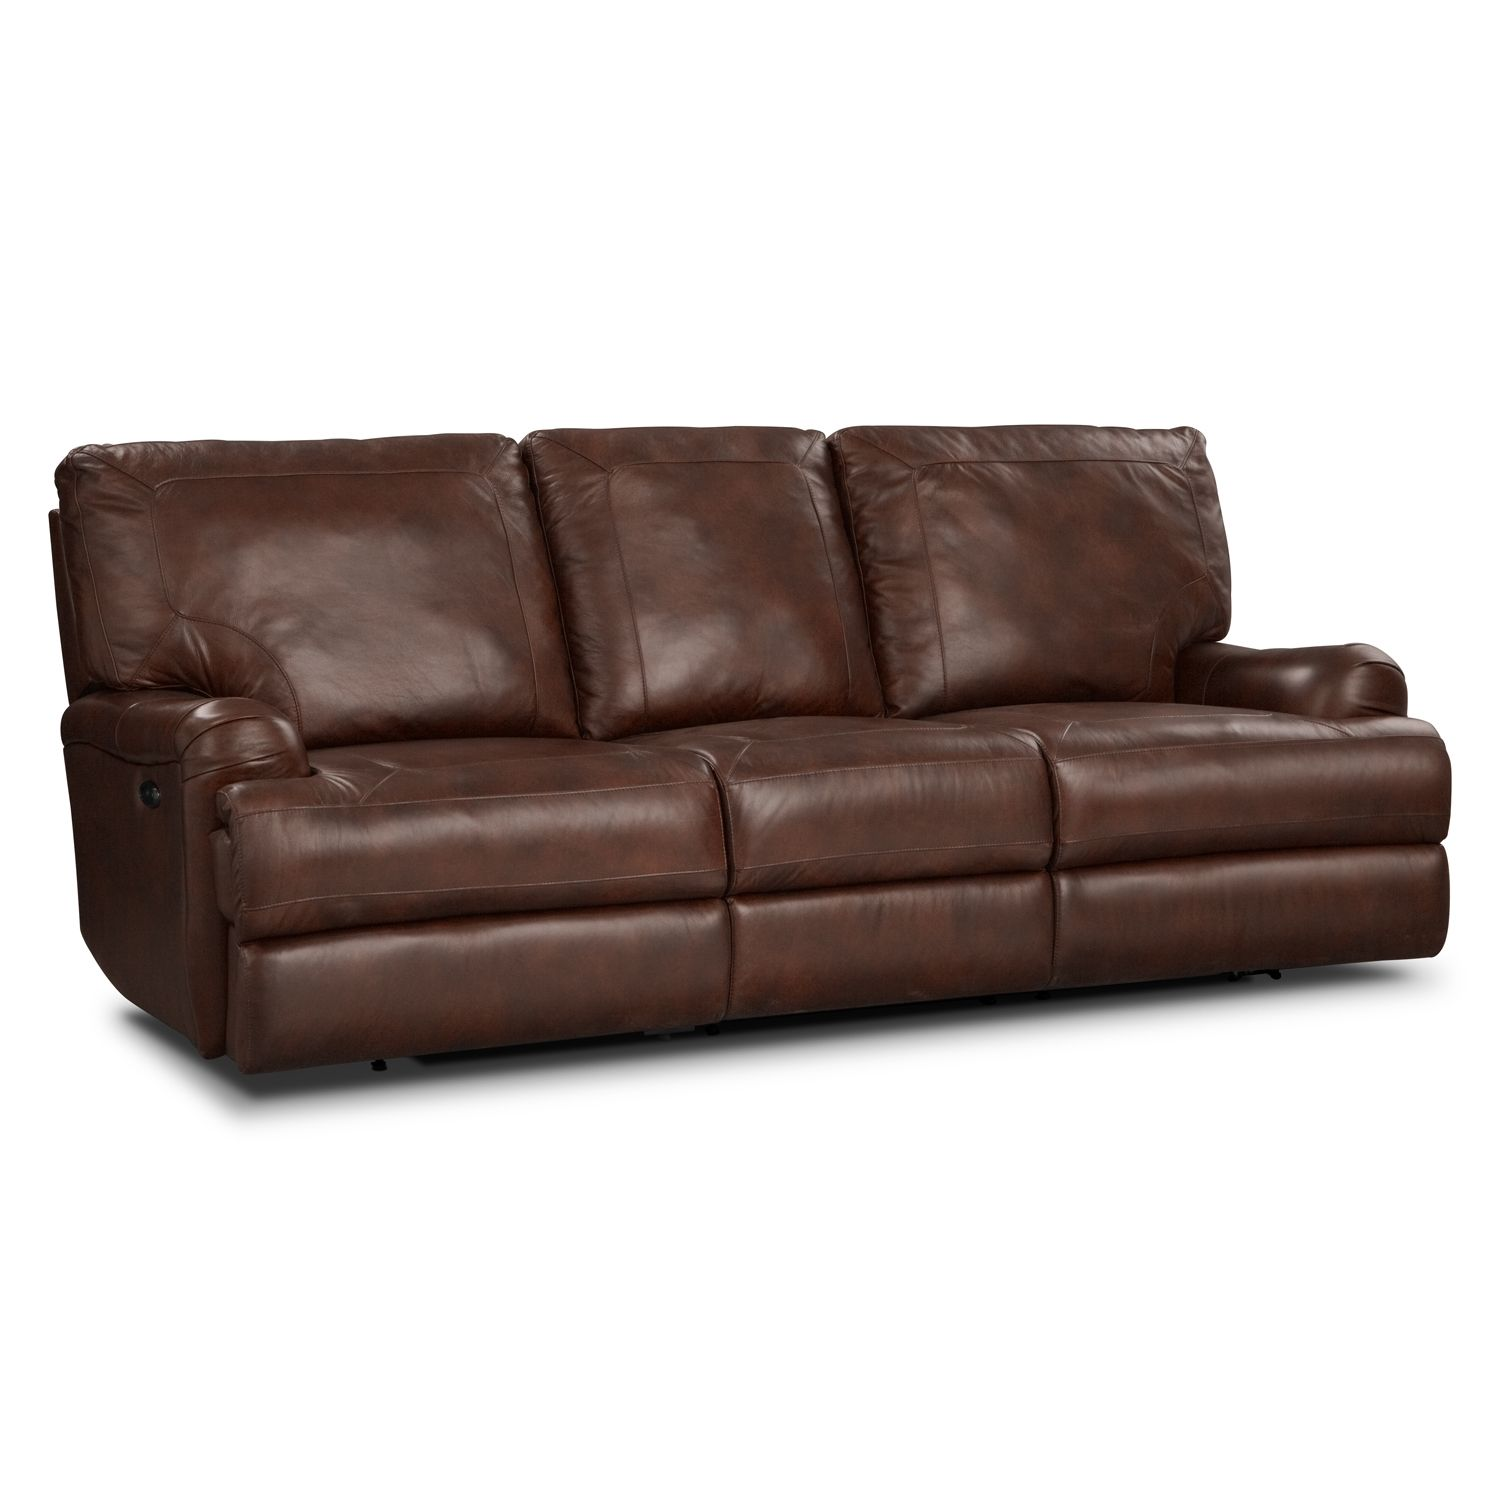 reclining chair sectional canada with sofas narrow swivel sets recliner recliners sofa image best